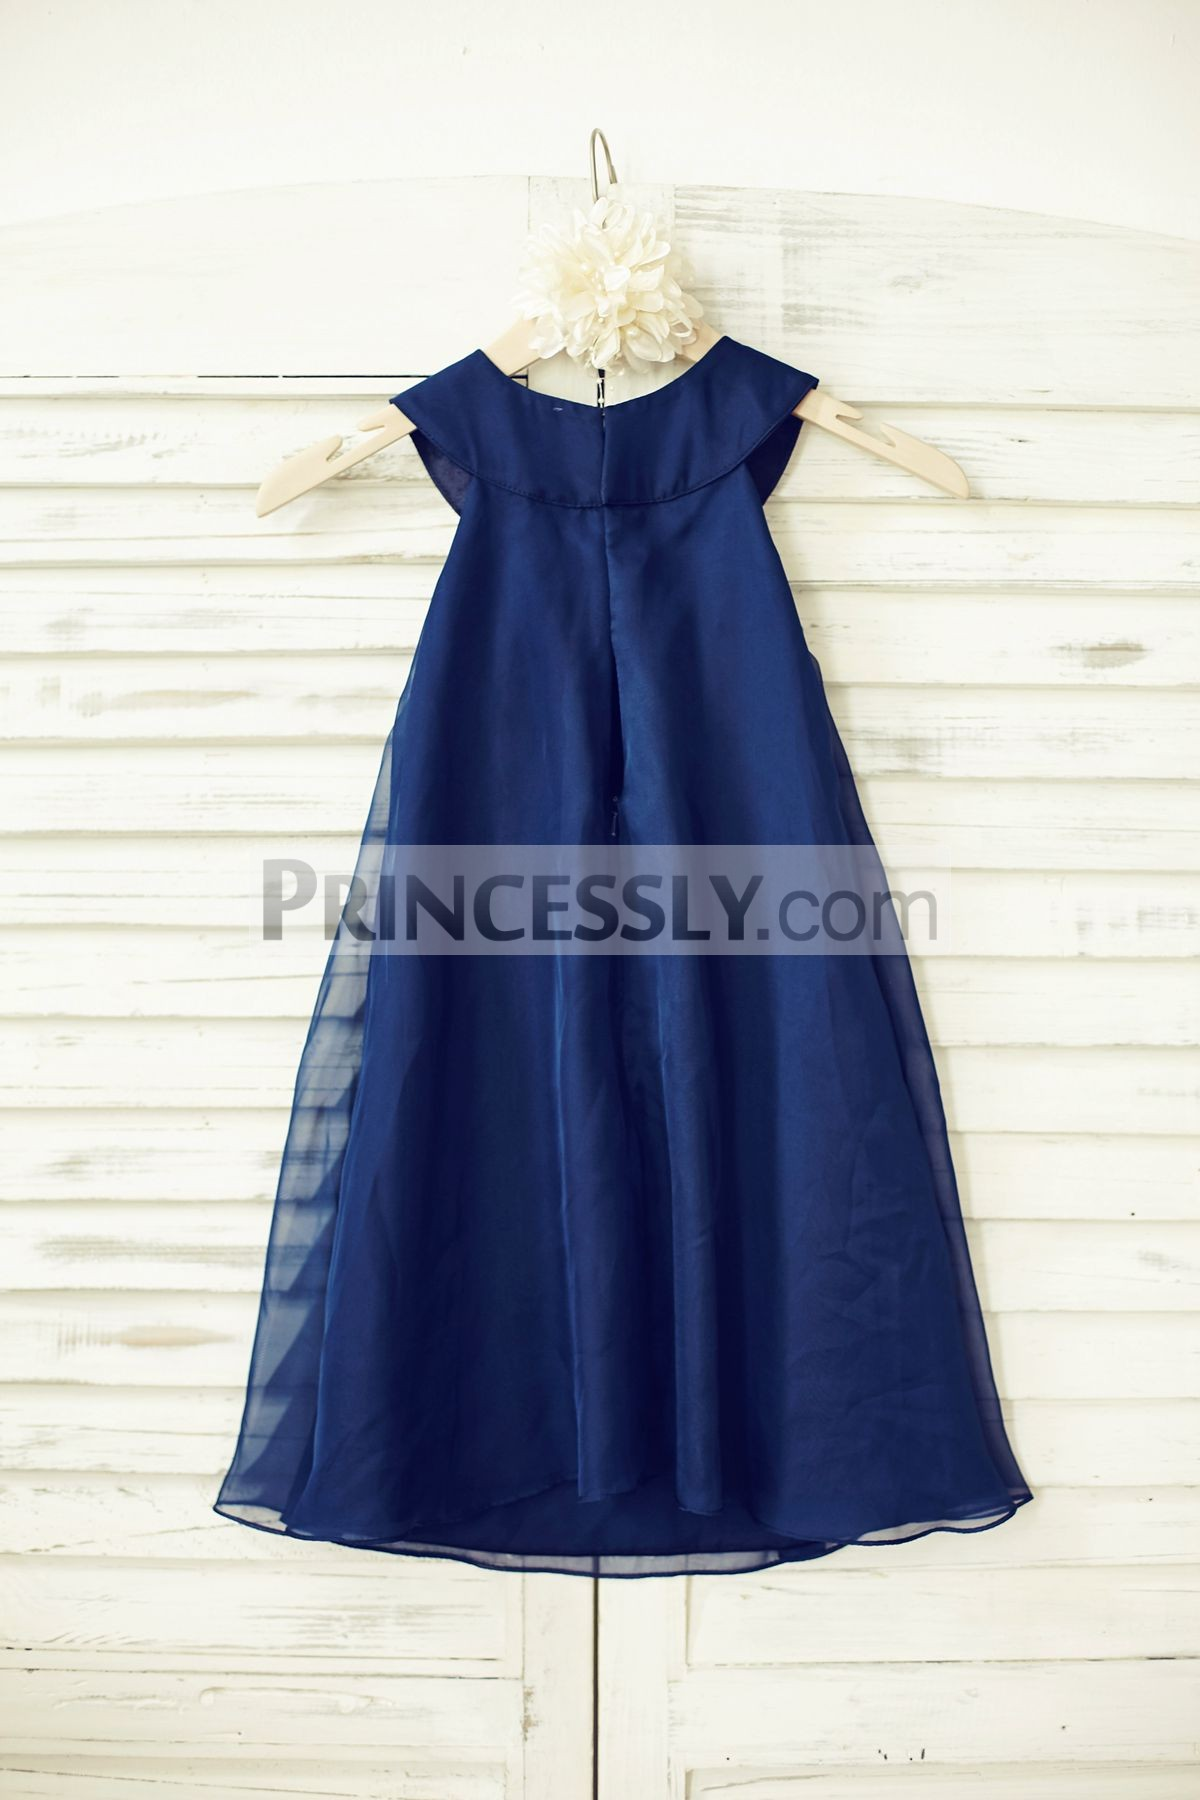 Soft navy blue chiffon sleeveless wedding baby girl dress